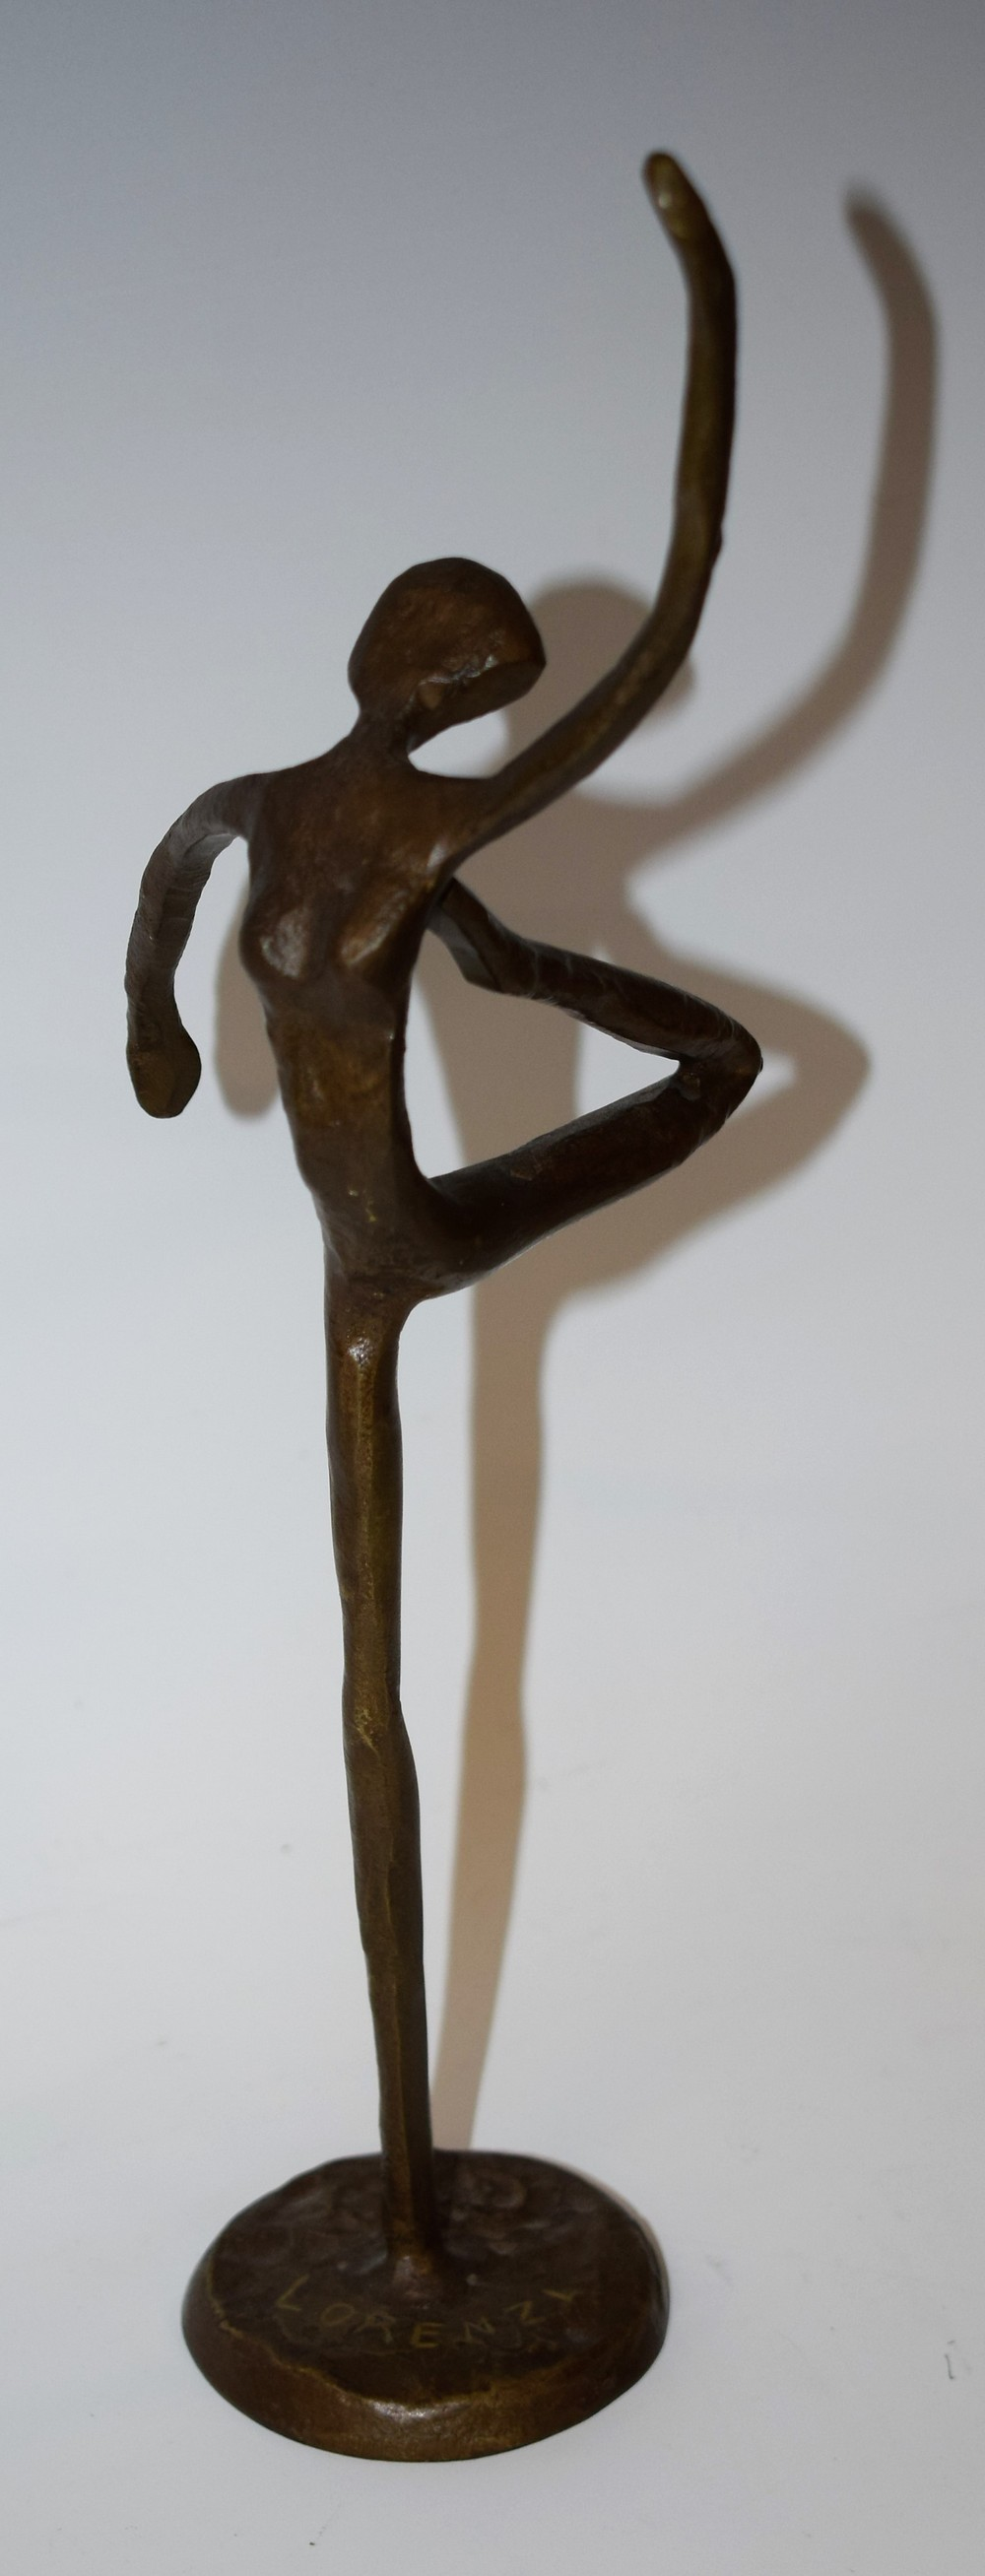 Lot 11 - A Hagenauer style bronze figure, Dancing Girl, moulded base, later marked Lorenzl,